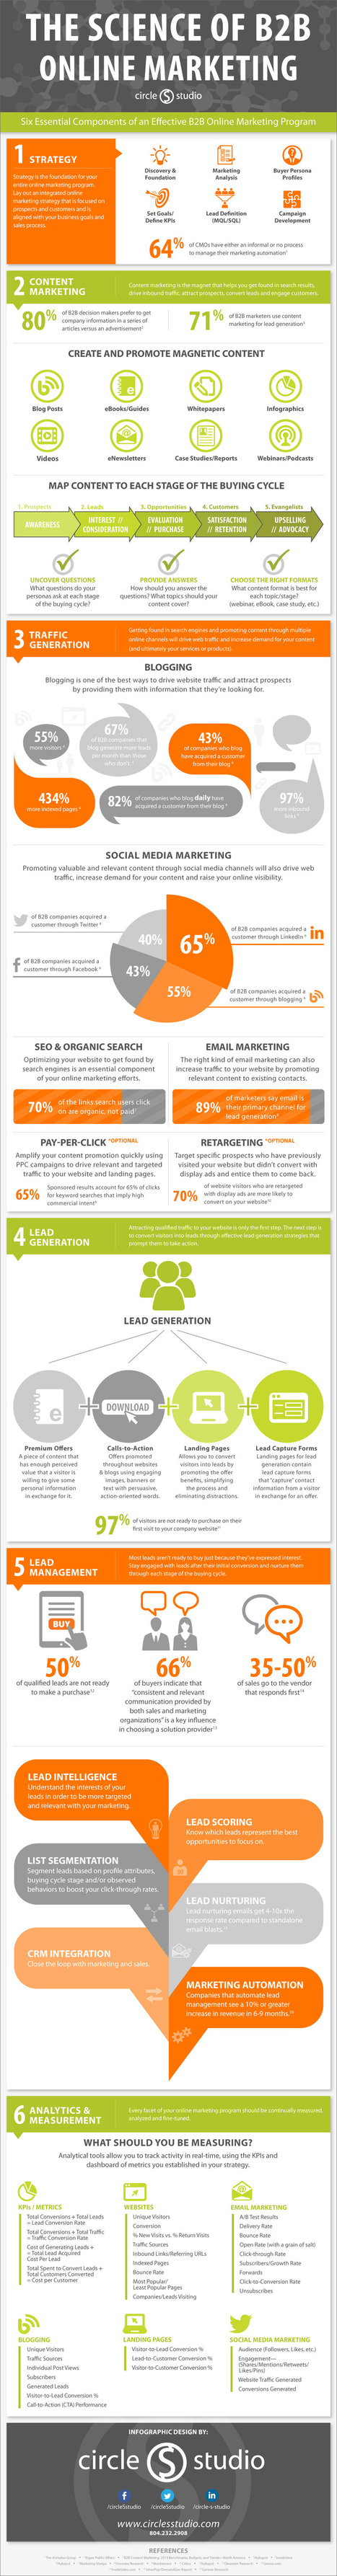 6 Tips for Better B2B Marketing (Infographic) | Communication et webmarketing | Scoop.it